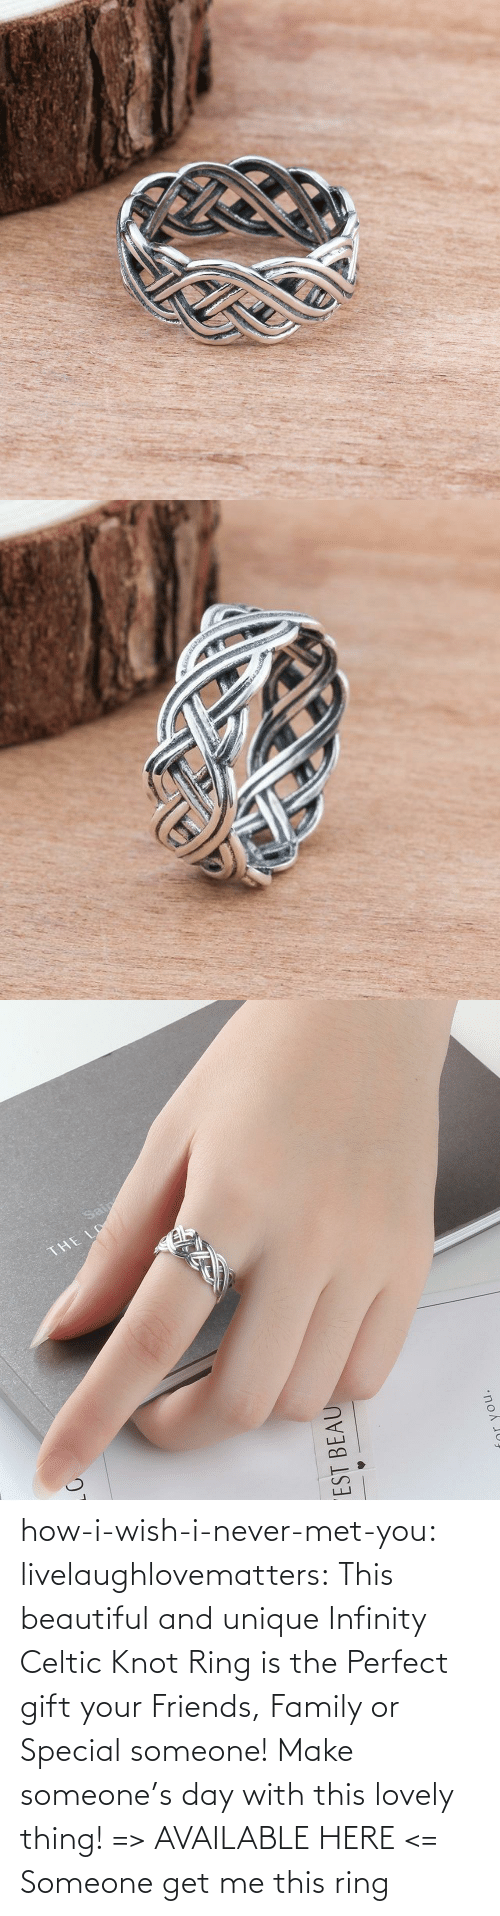 Beautiful, Celtic, and Family: how-i-wish-i-never-met-you: livelaughlovematters:  This beautiful and uniqueInfinity Celtic Knot Ring is the Perfect gift your Friends, Family or Special someone! Make someone's day with this lovely thing! => AVAILABLE HERE <=    Someone get me this ring